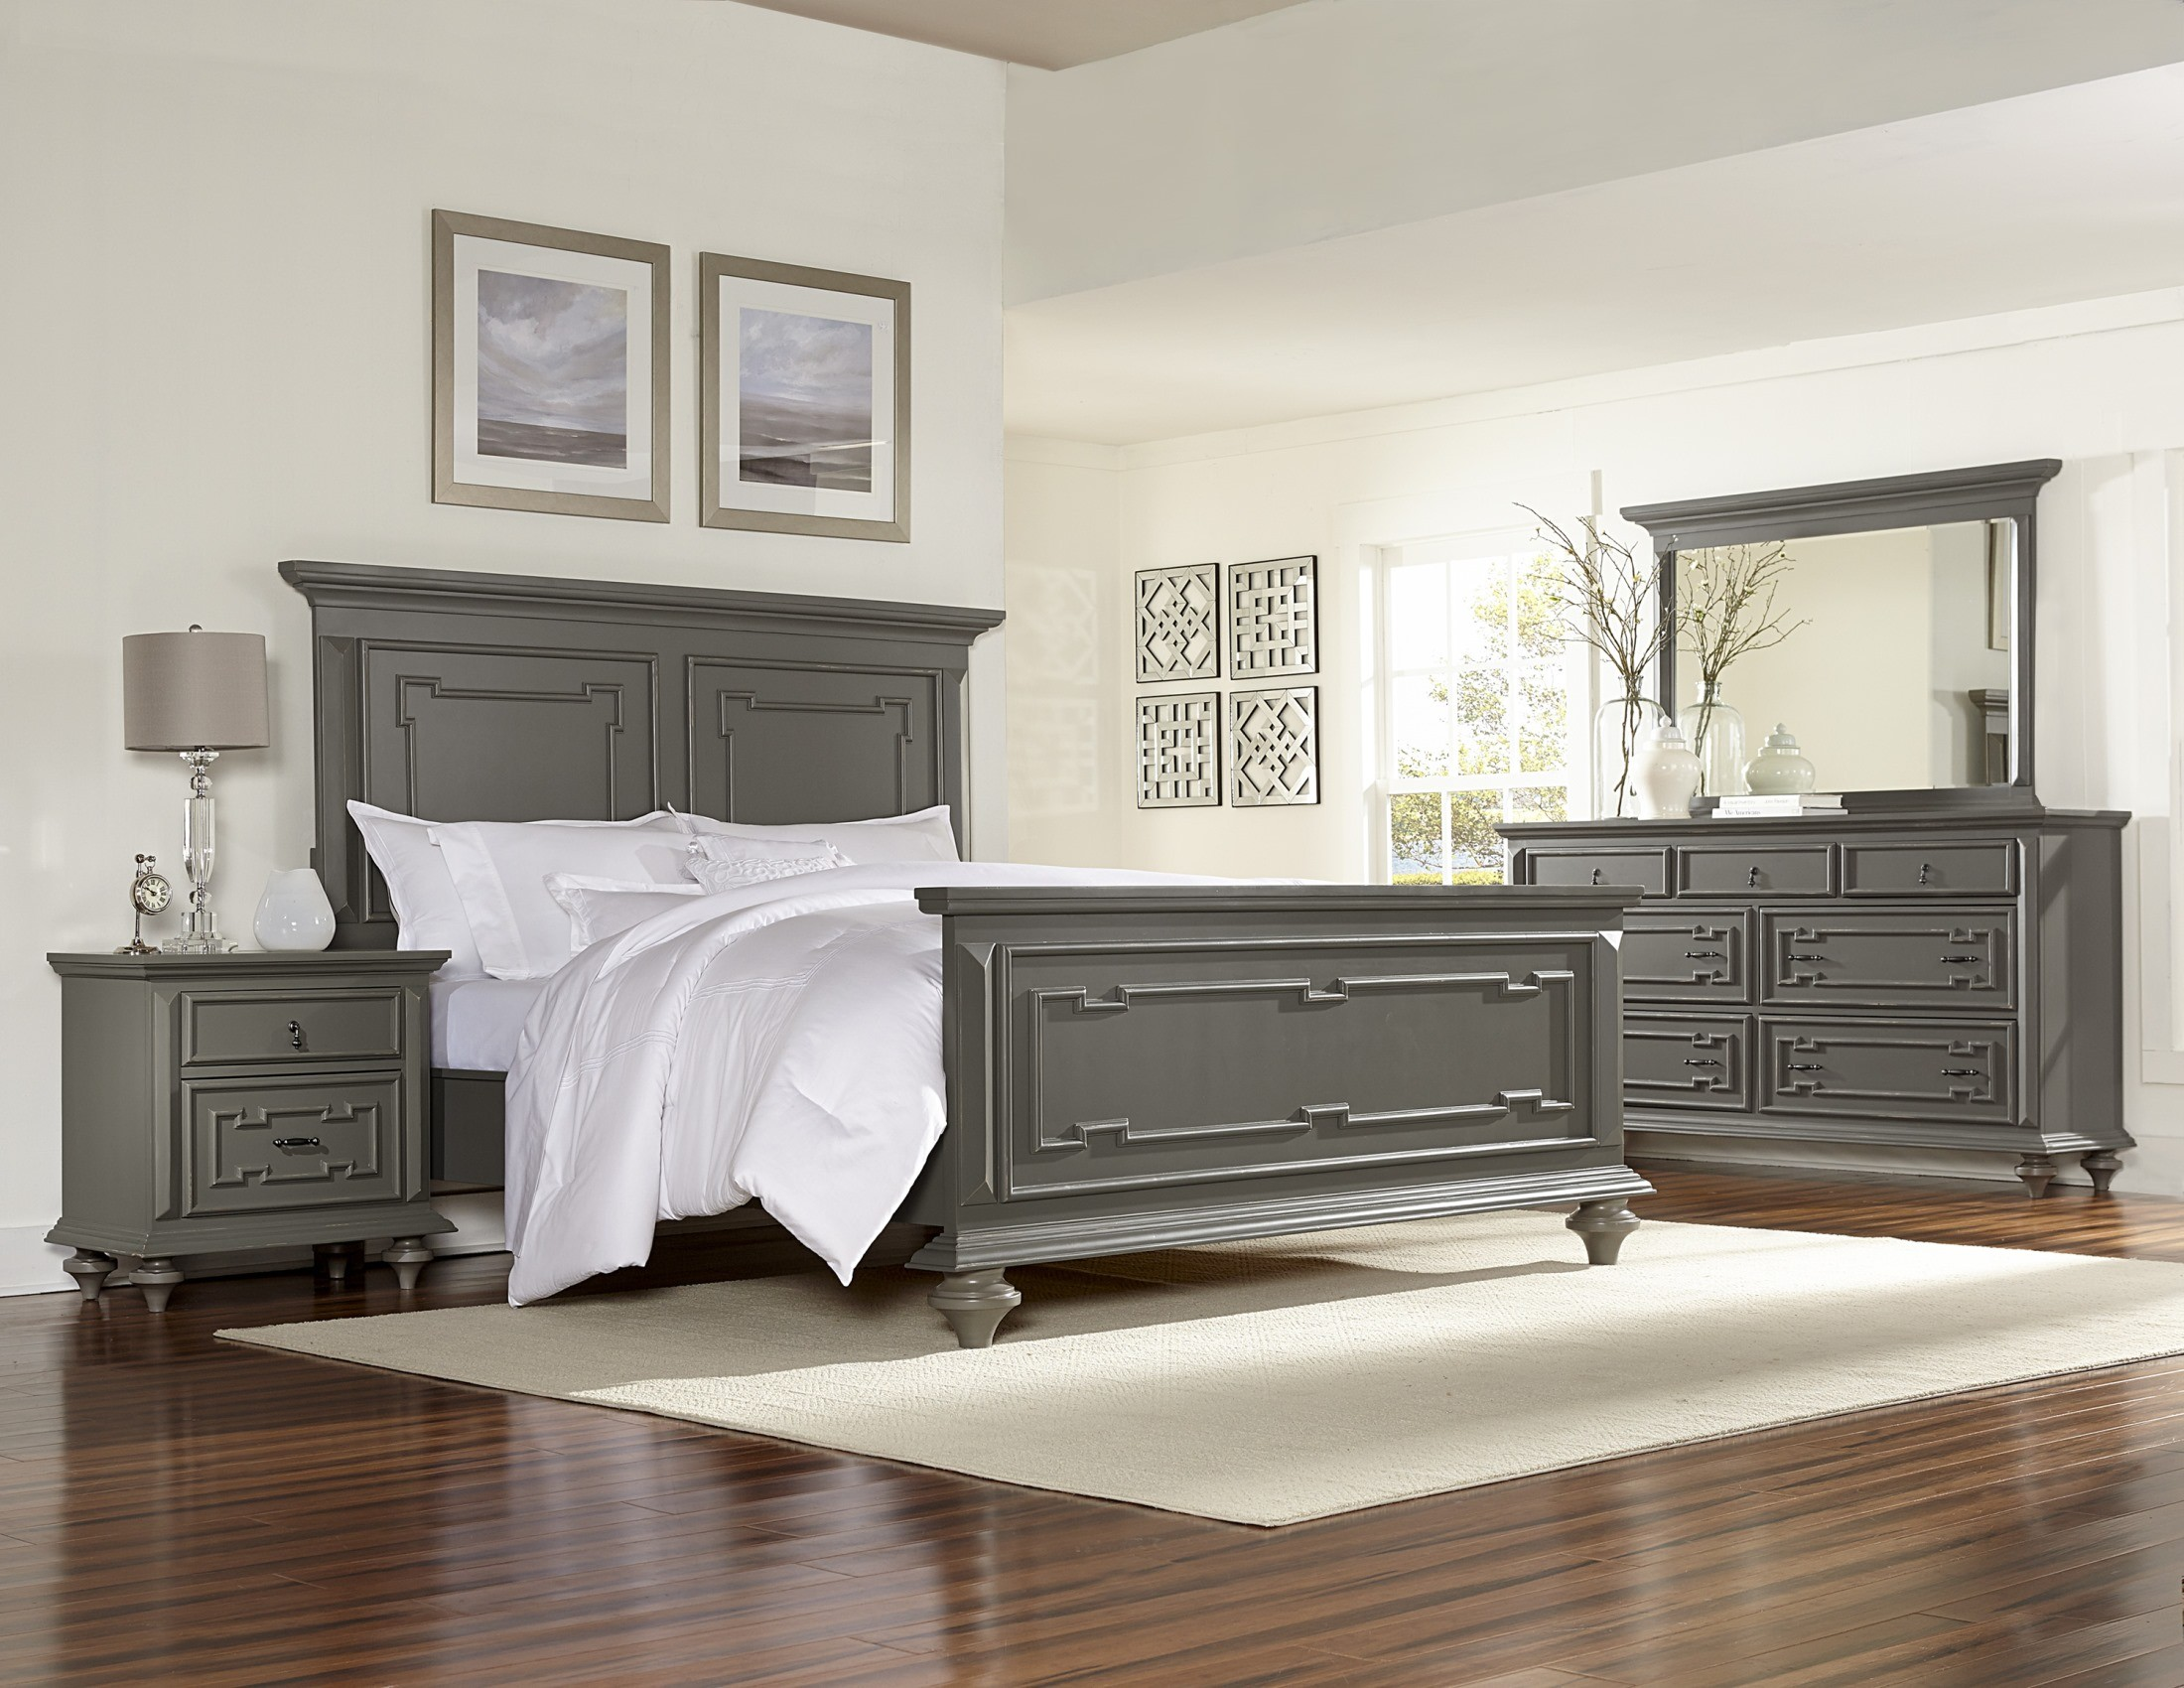 bellamy room home set bedroom furniture d fortytwo cor bed piece queen